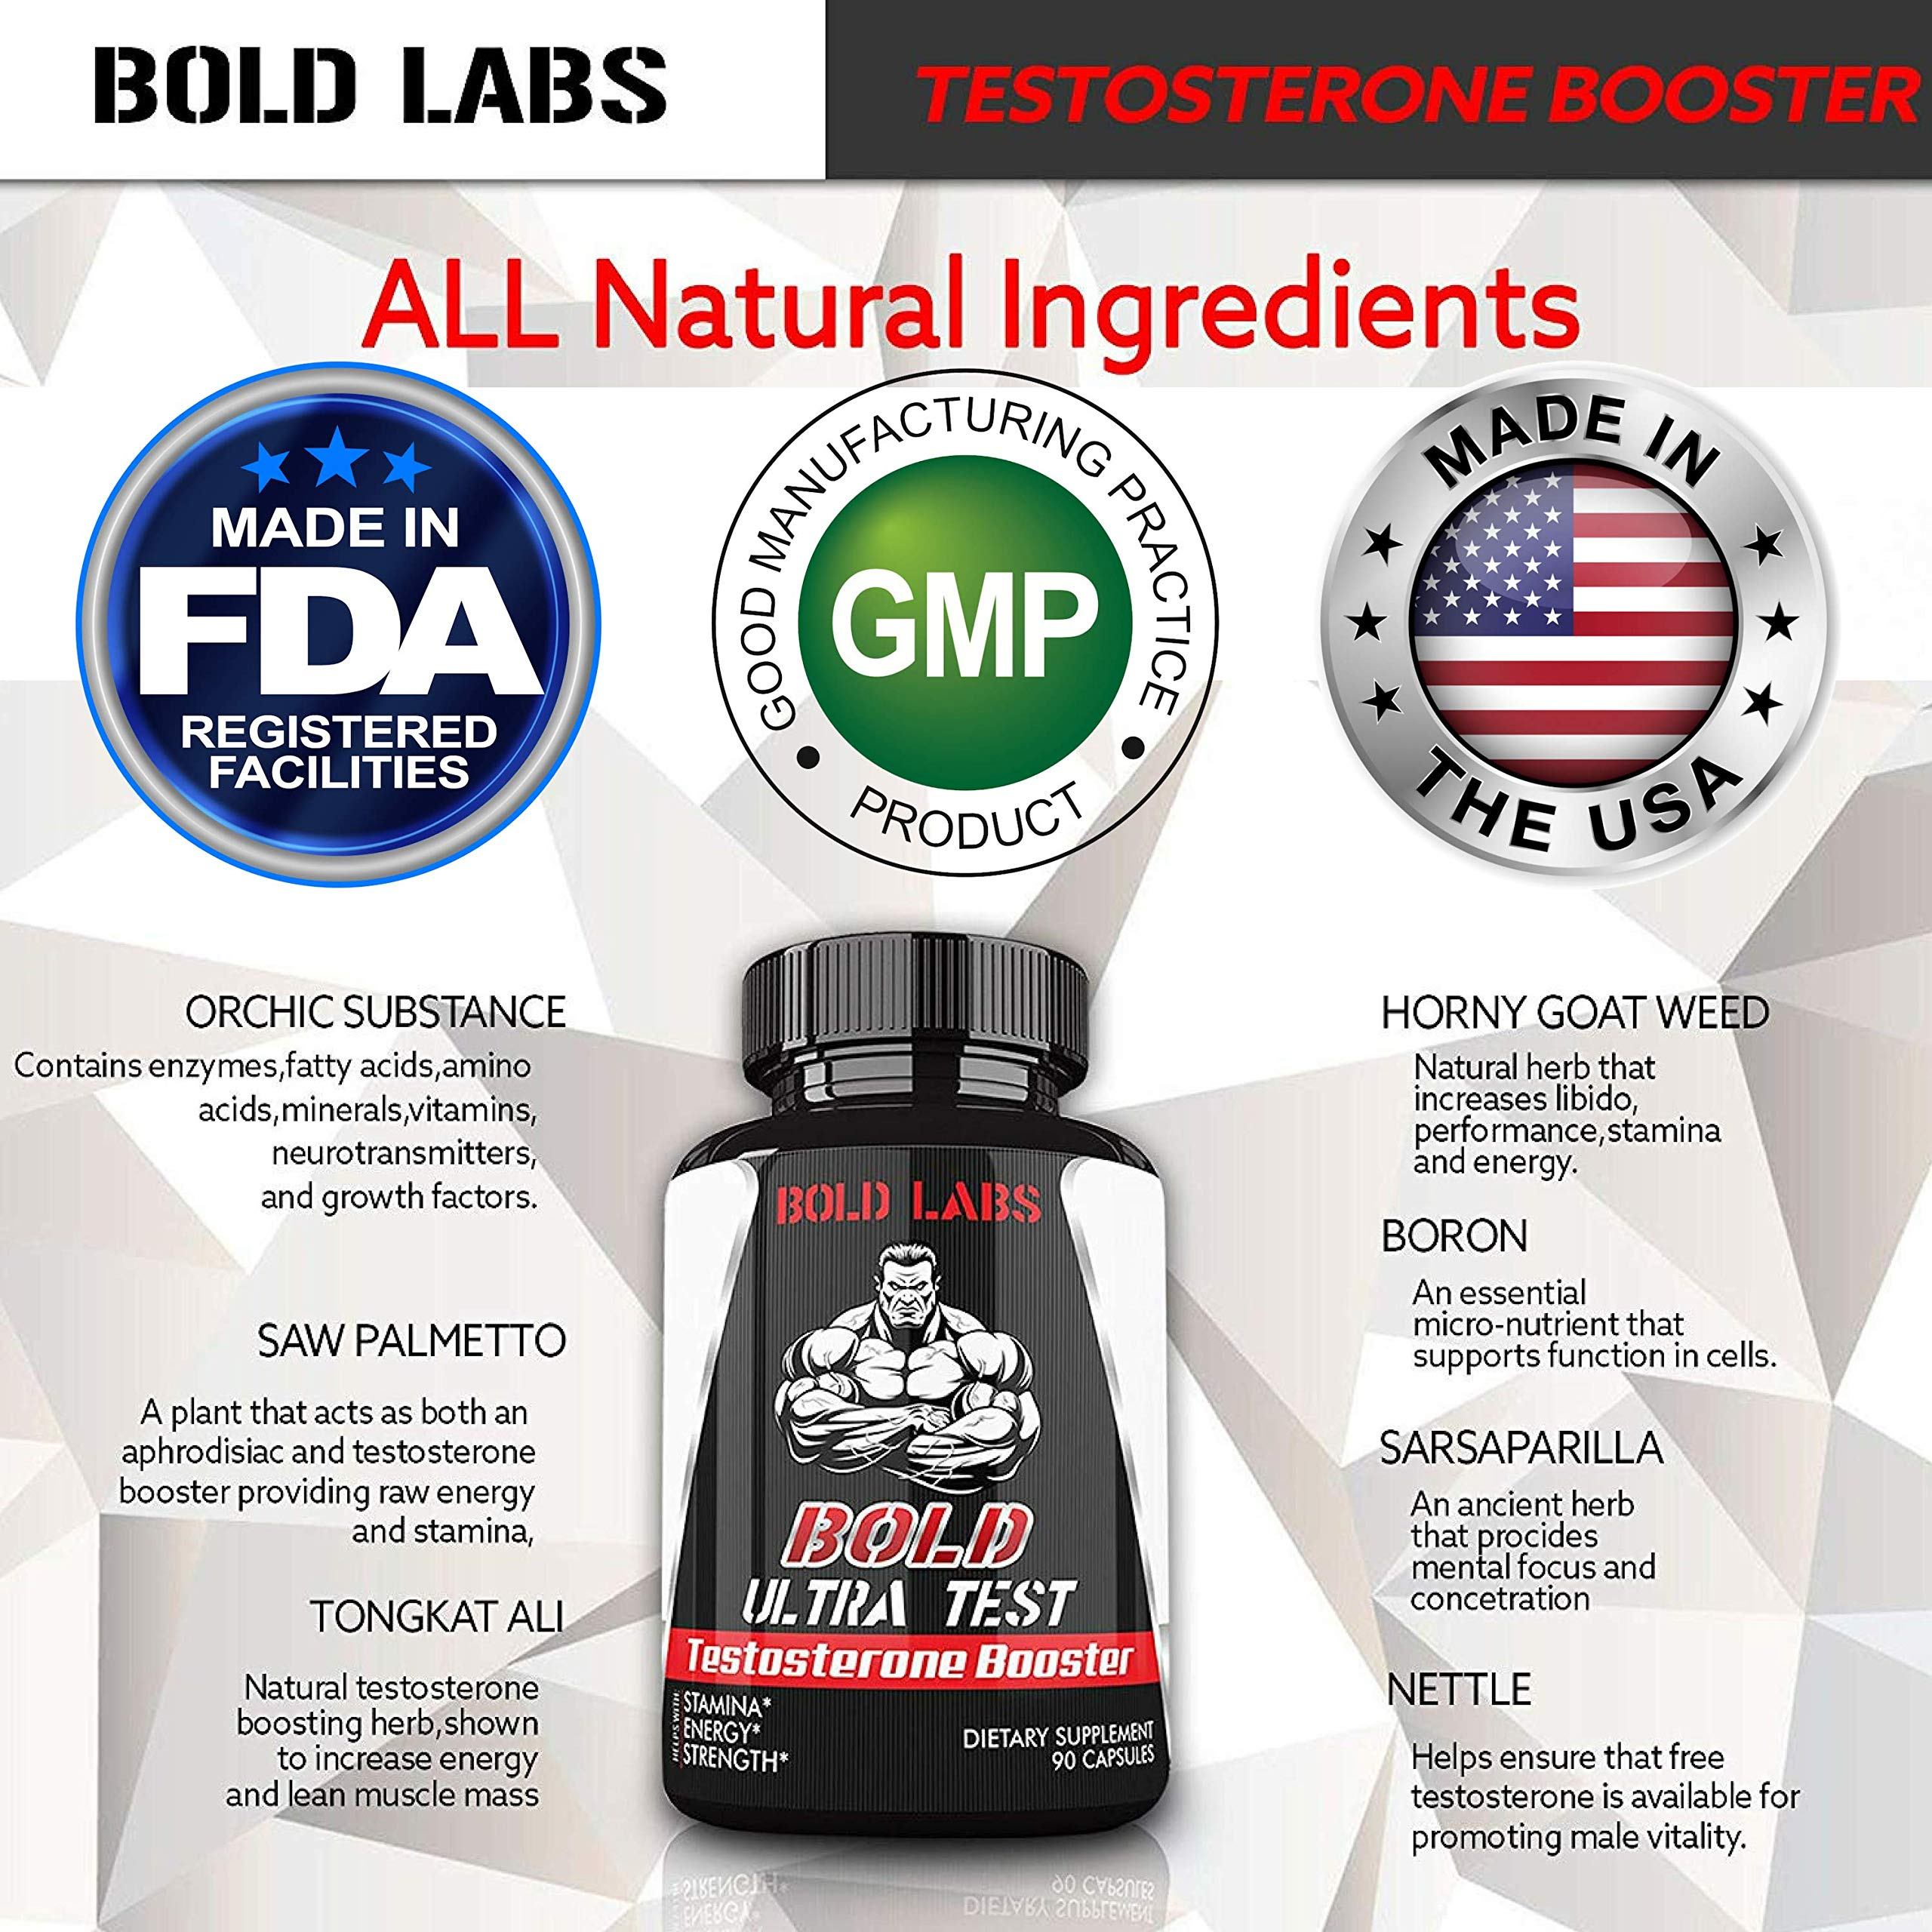 Testosterone Booster Extra Strength (90 Capsules) 1305 MG Testosterone Booster for Men Blend